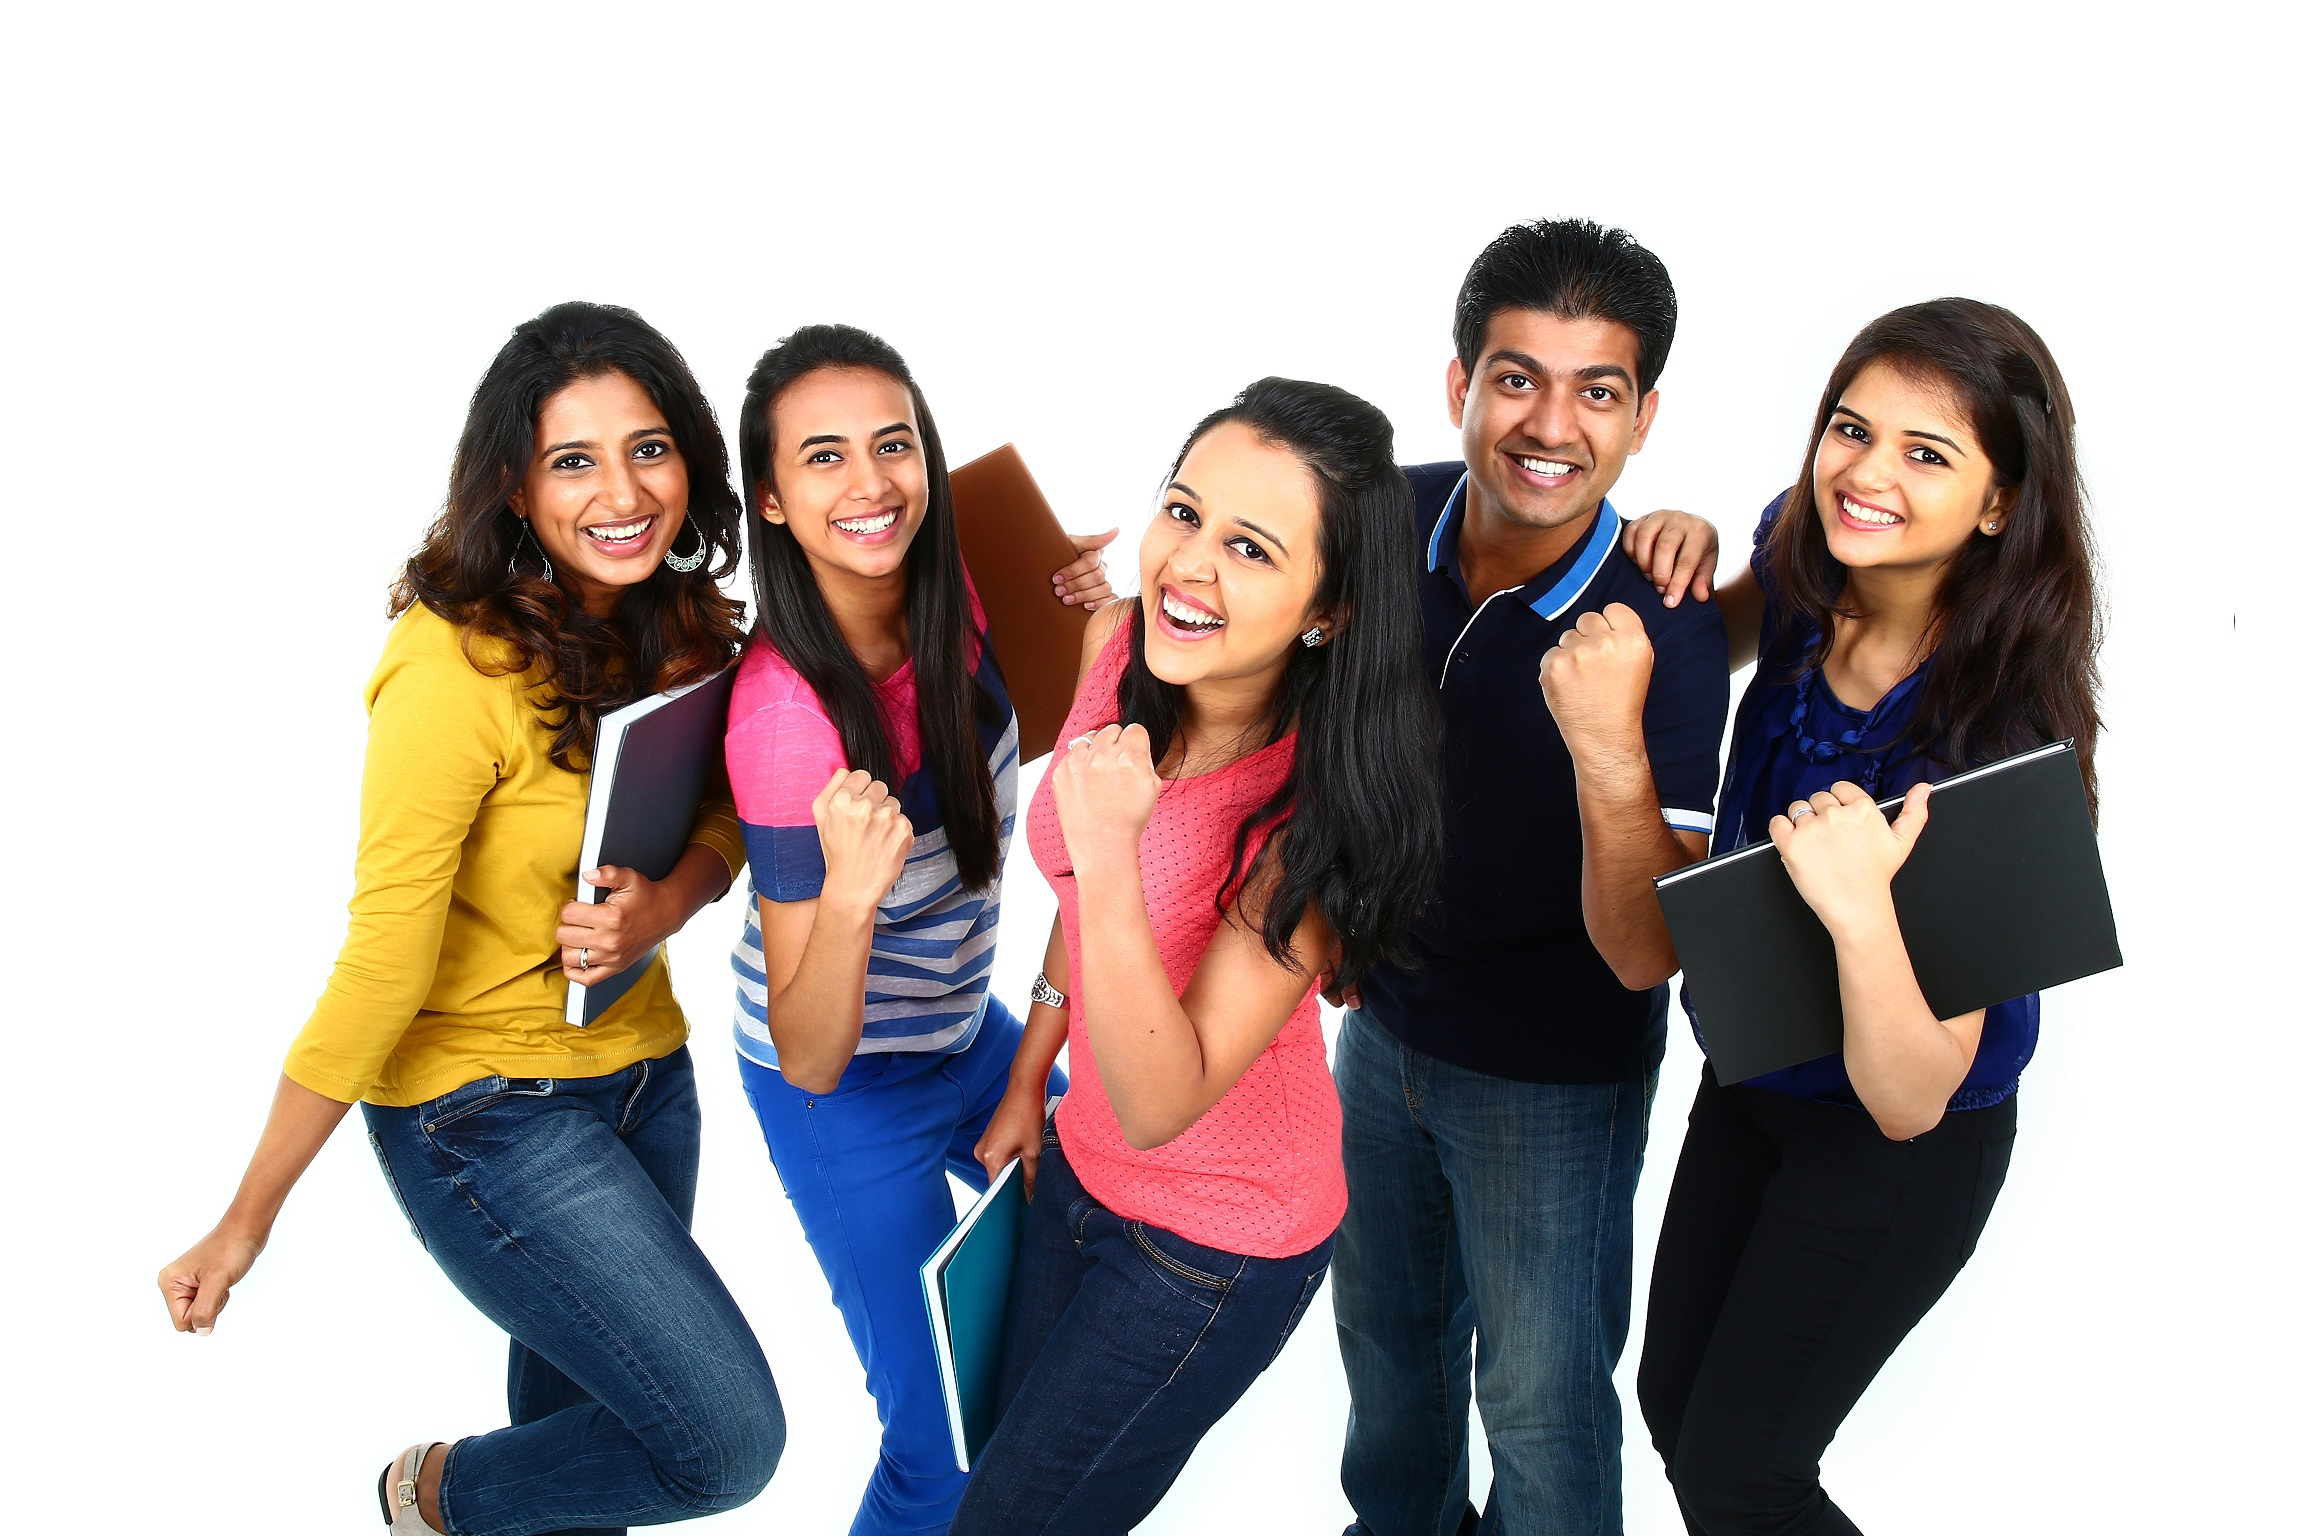 Group of Indian students